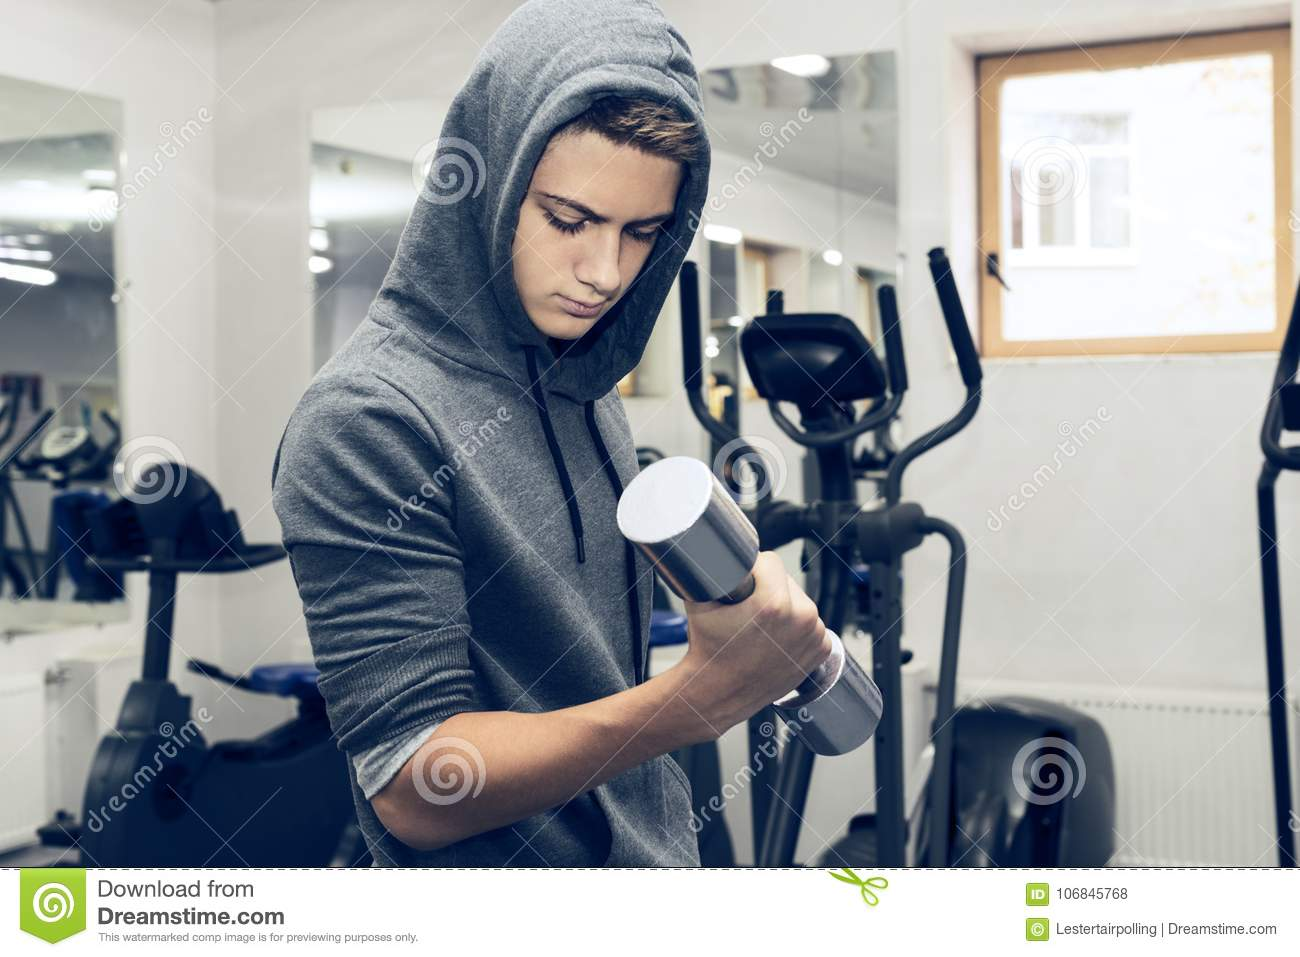 The Teenager Is Engaged In Power Fitness Stock Photo